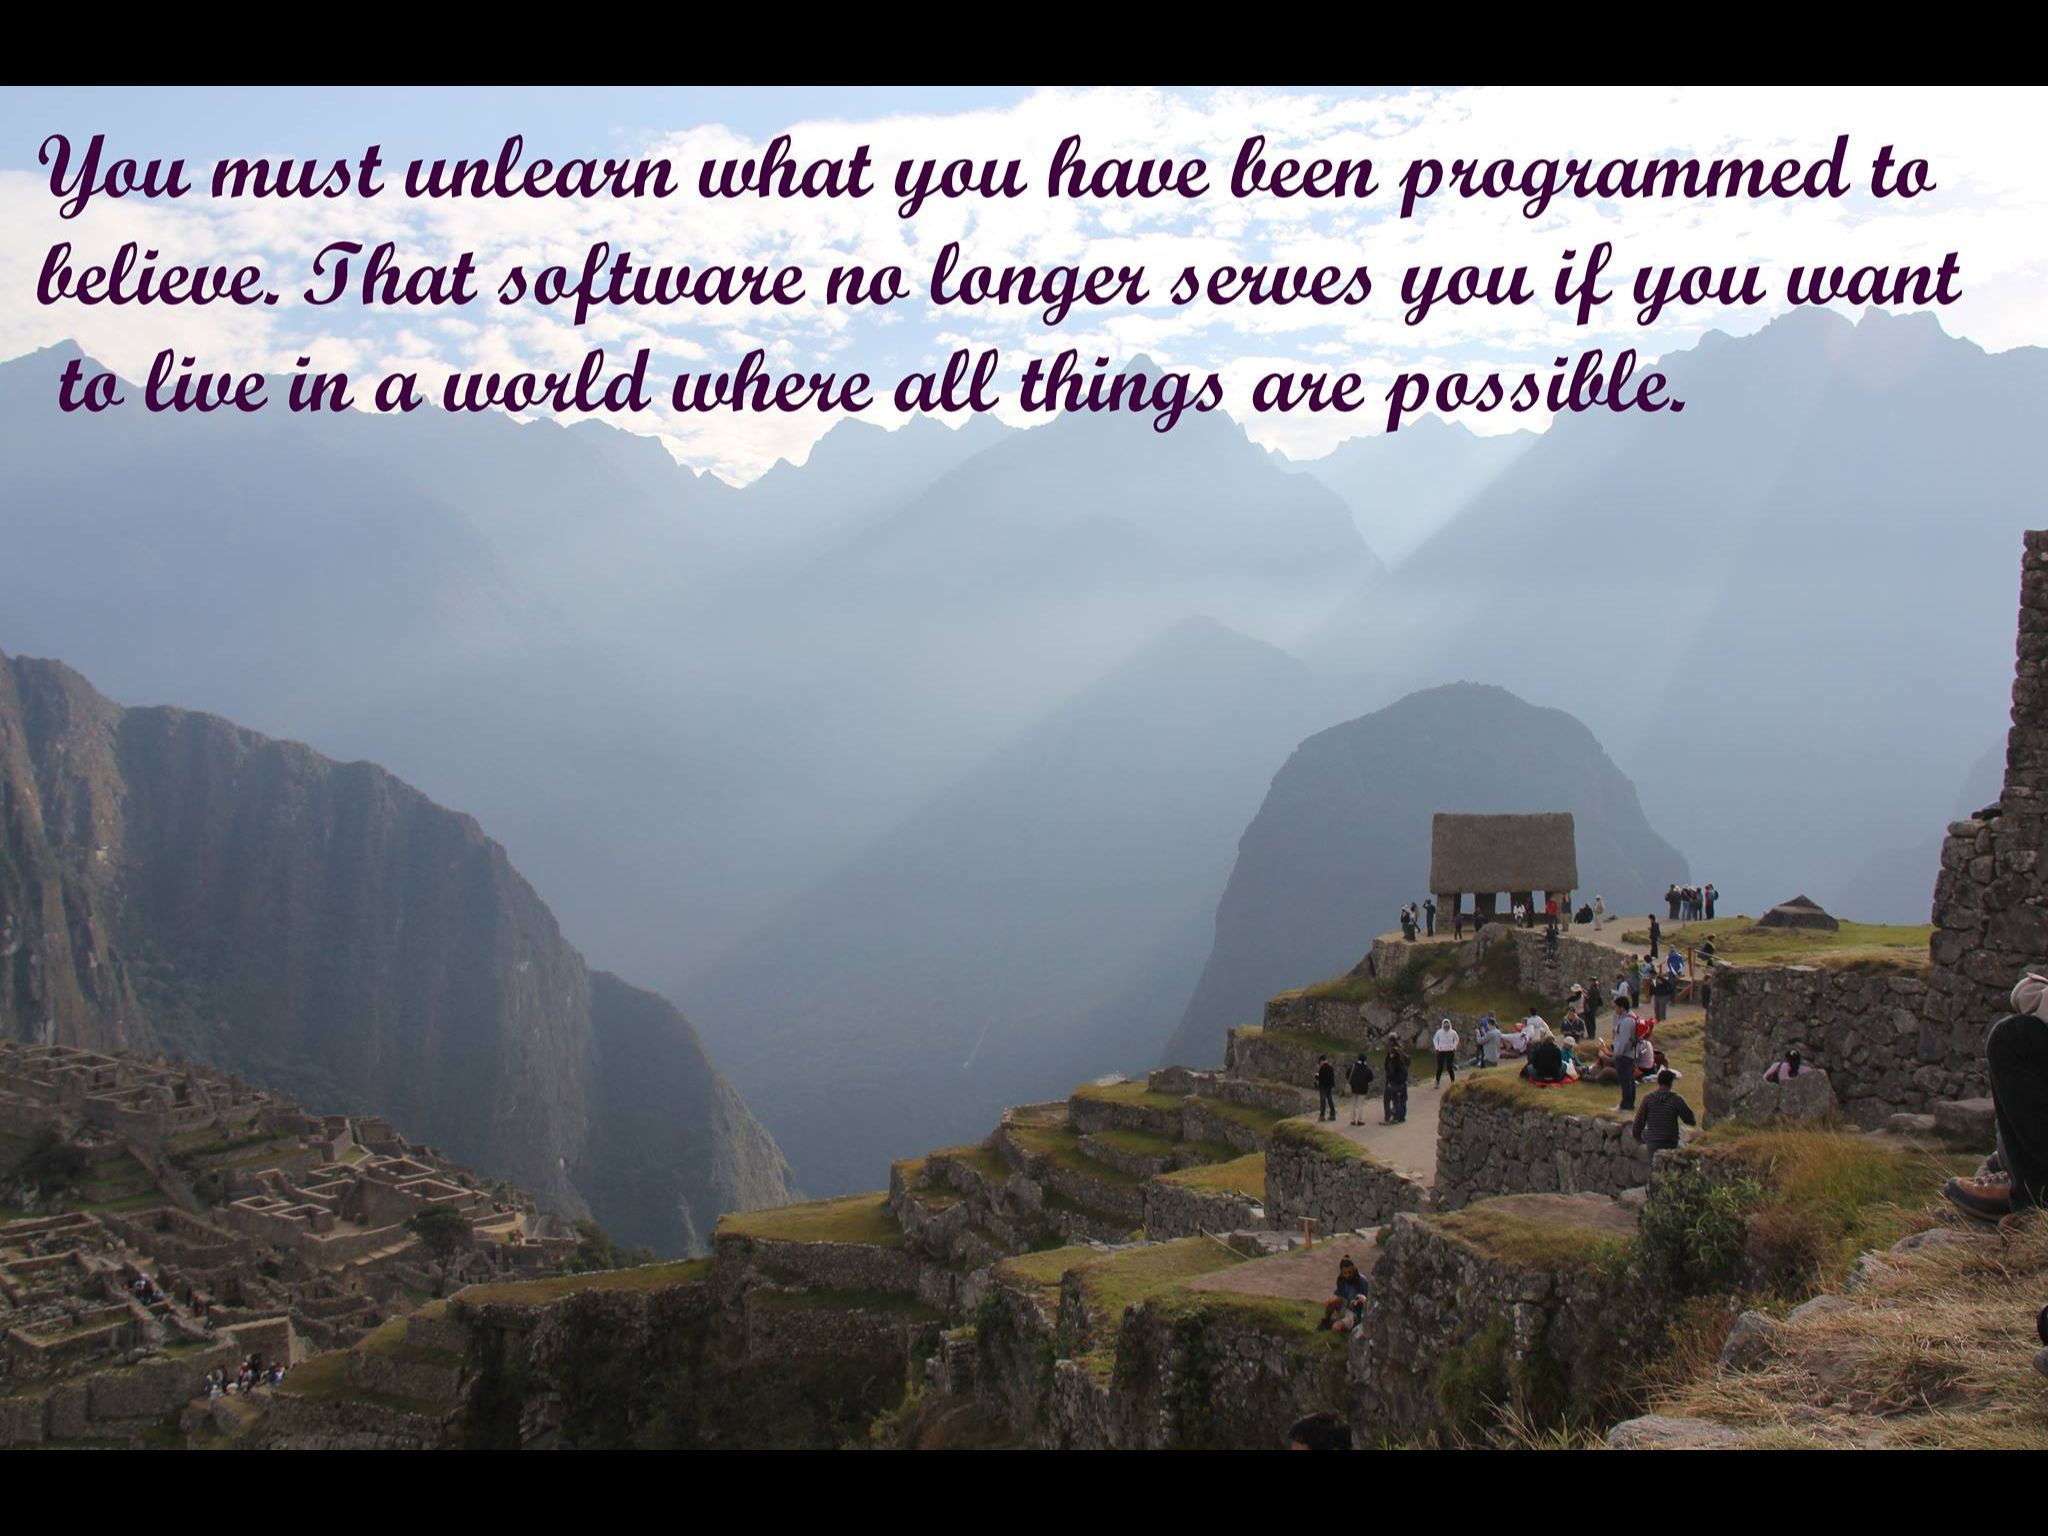 You must unlearn what you have been programmed to believe. That software no longer serves you if you want to live in a world where all things are possible.